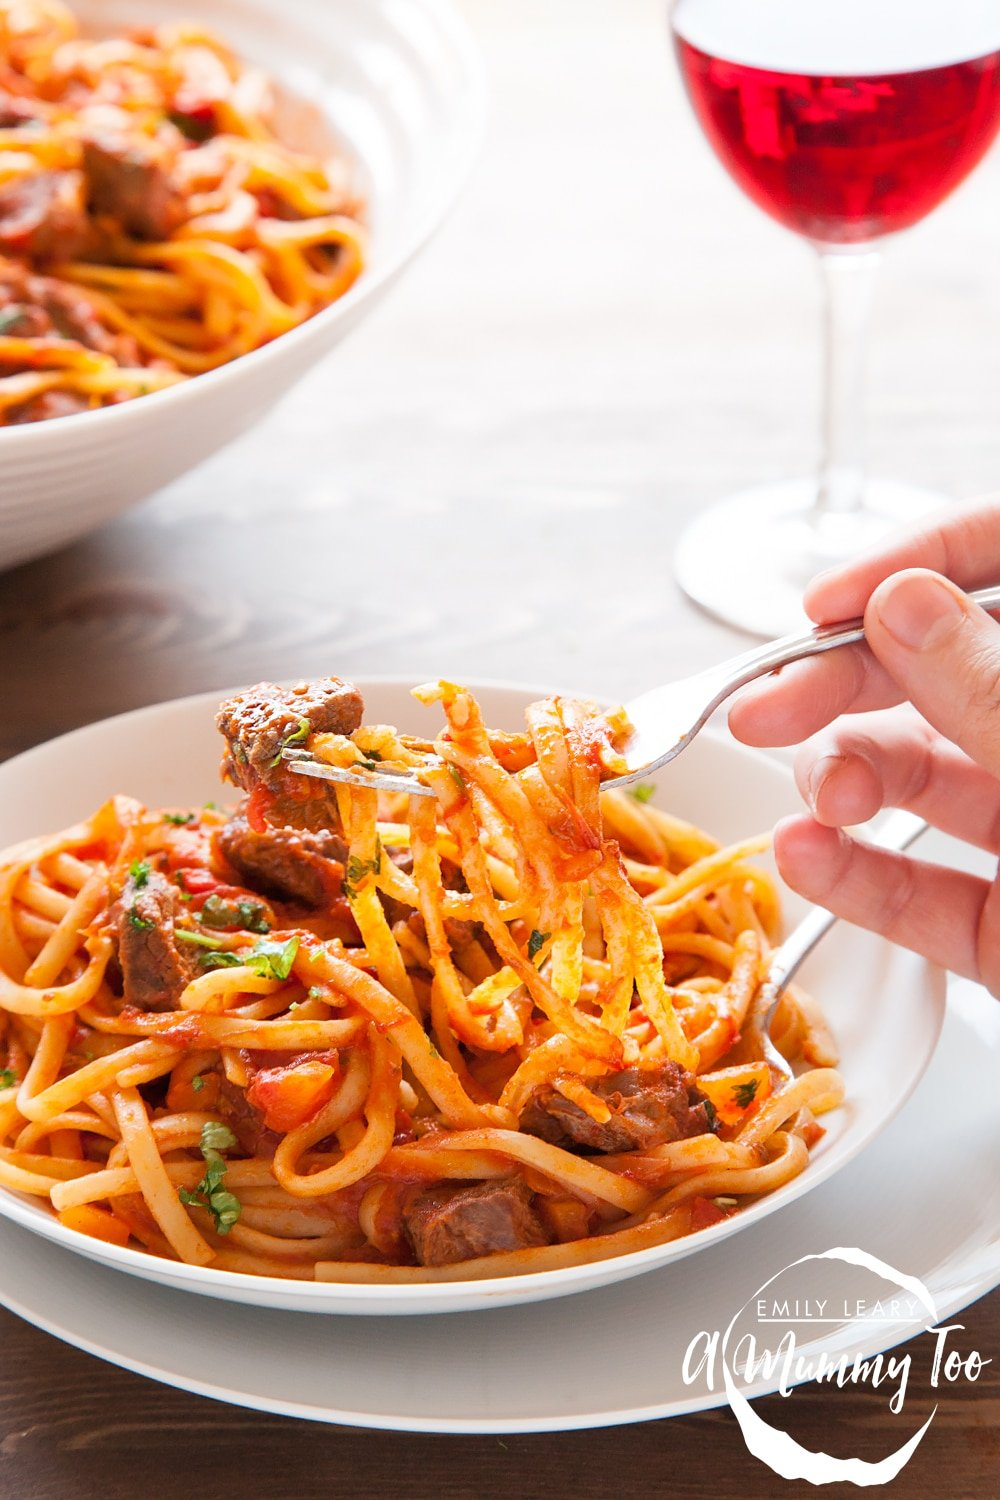 A lovely serving of beef ragu linguine. With soft shin and leg cuts of beef which are cheaper but perfect for those incredible slow-cooked meals.